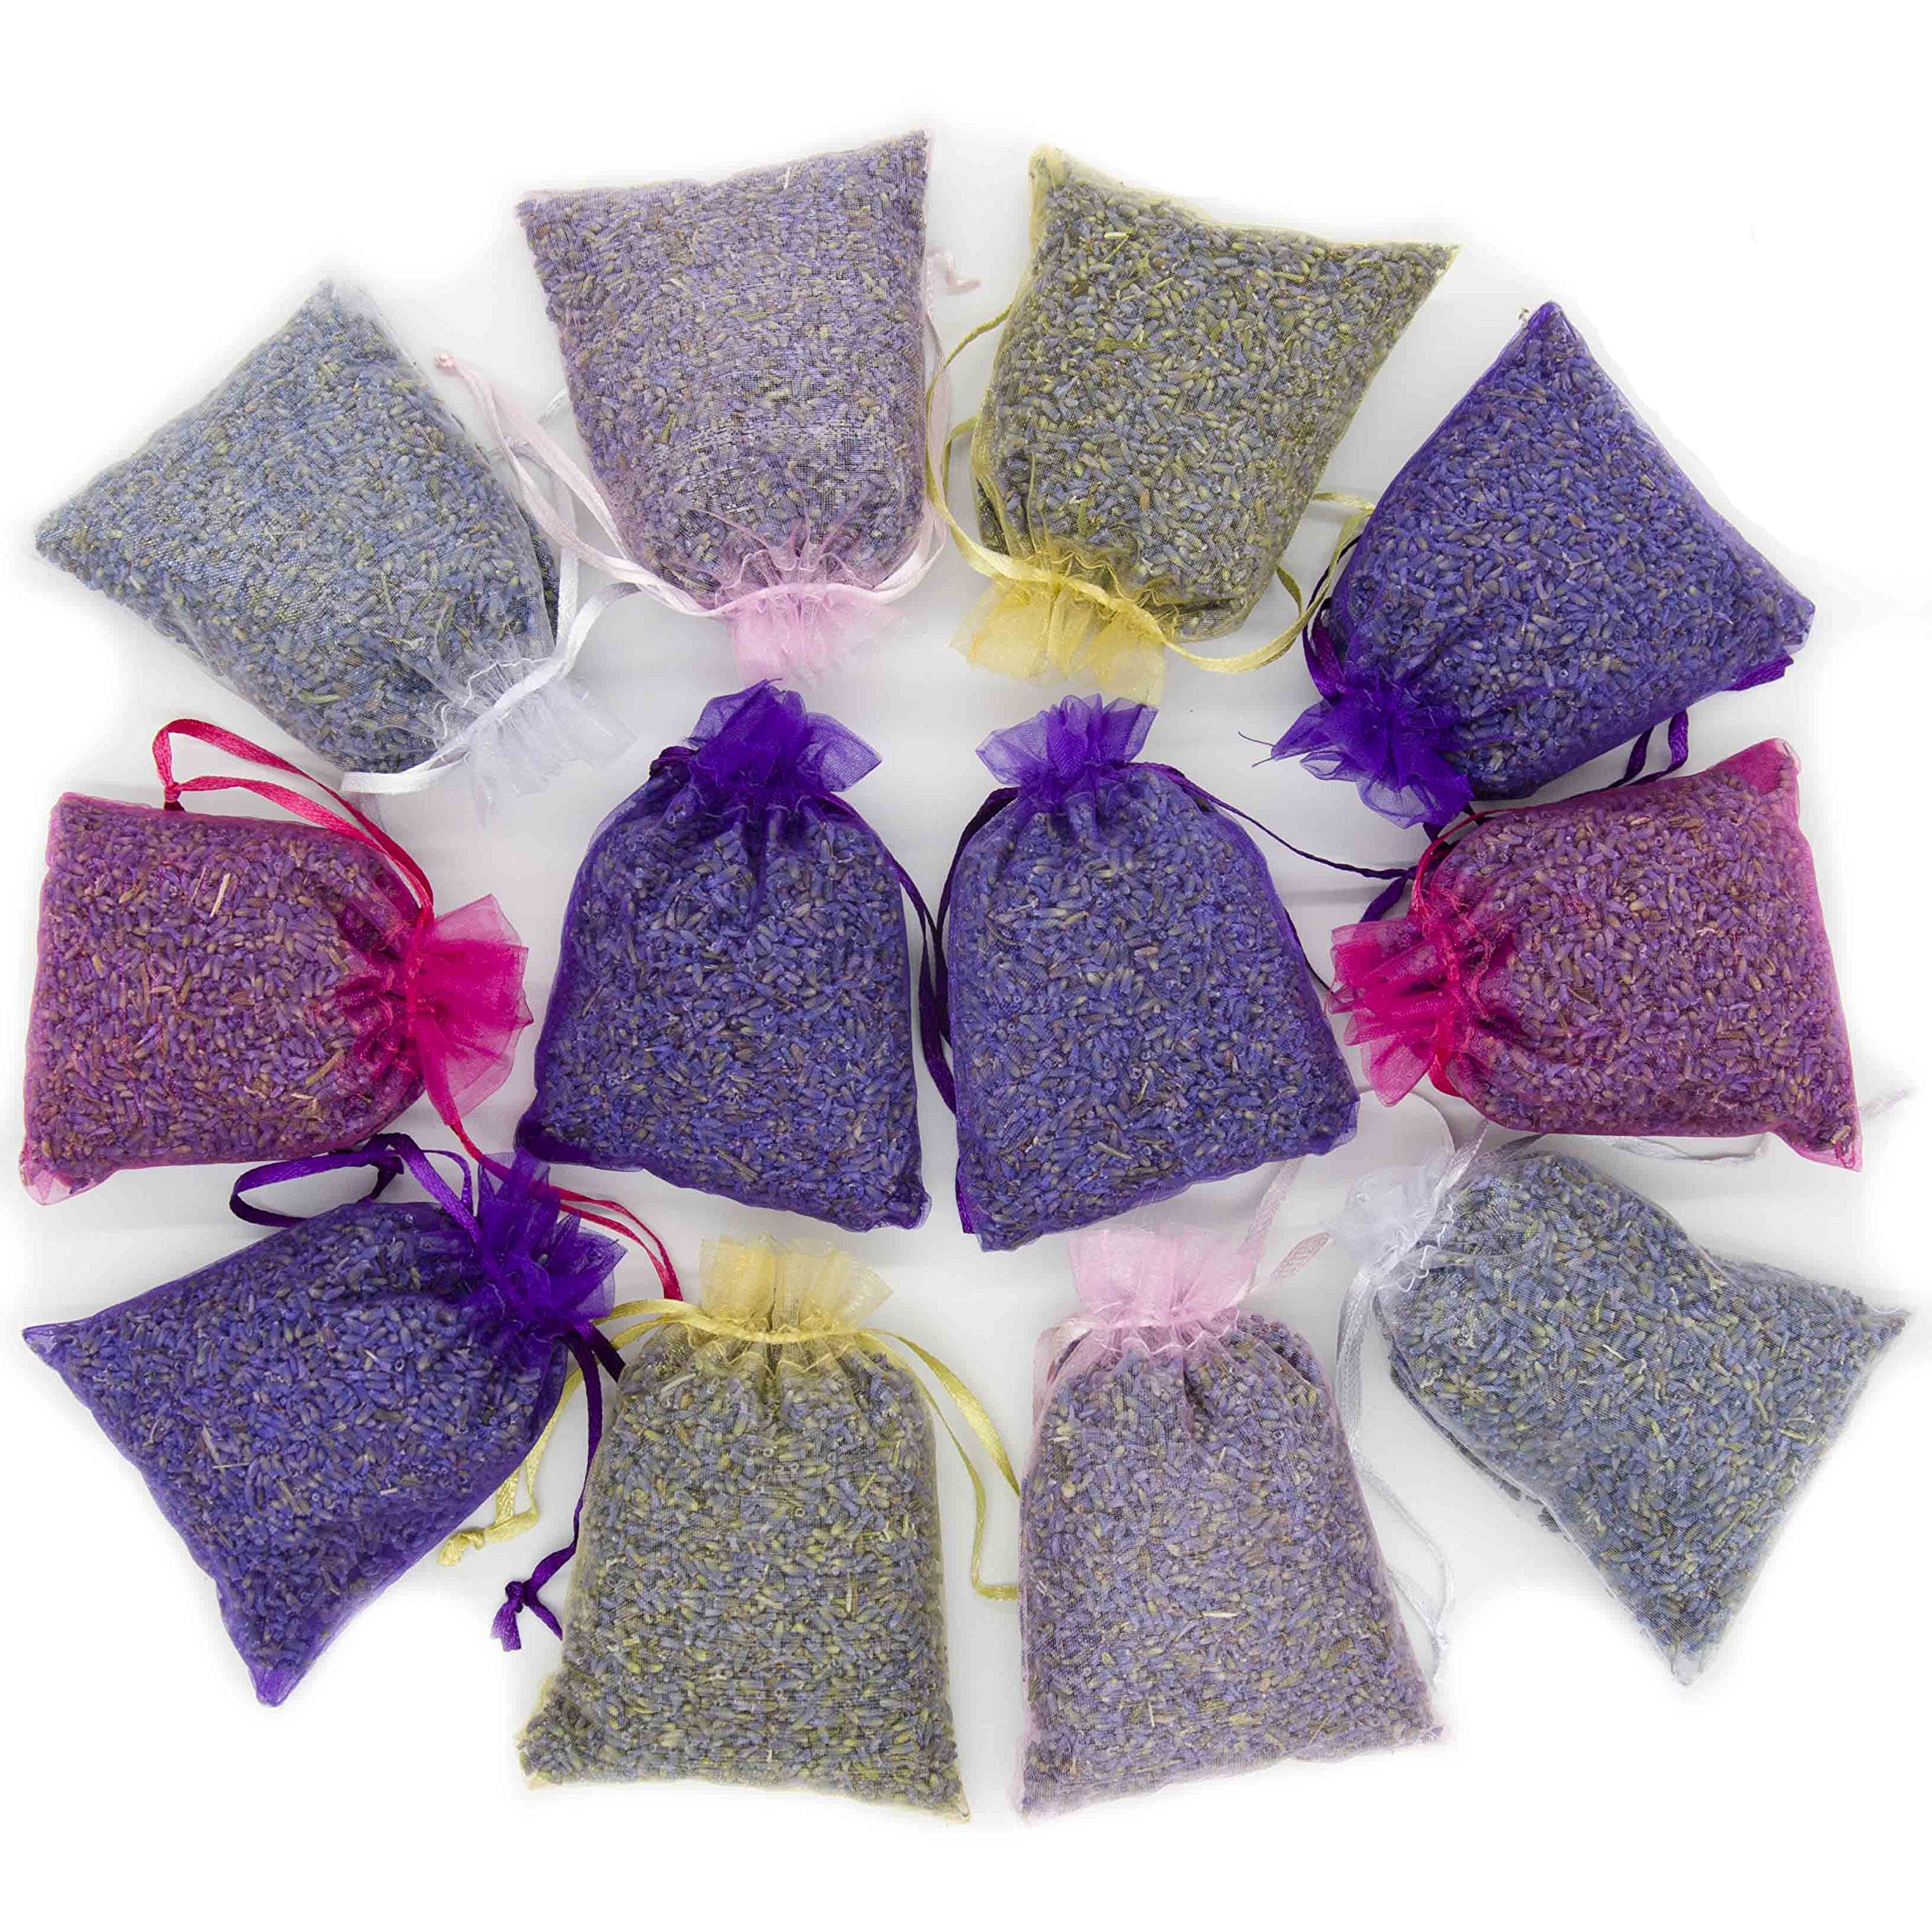 D'vine Dev French Lavender 12 Sachets Bag - Dried Lavender Flower Buds - 5 Colors Sachets with Easy Resealable Bag by D'vine Dev